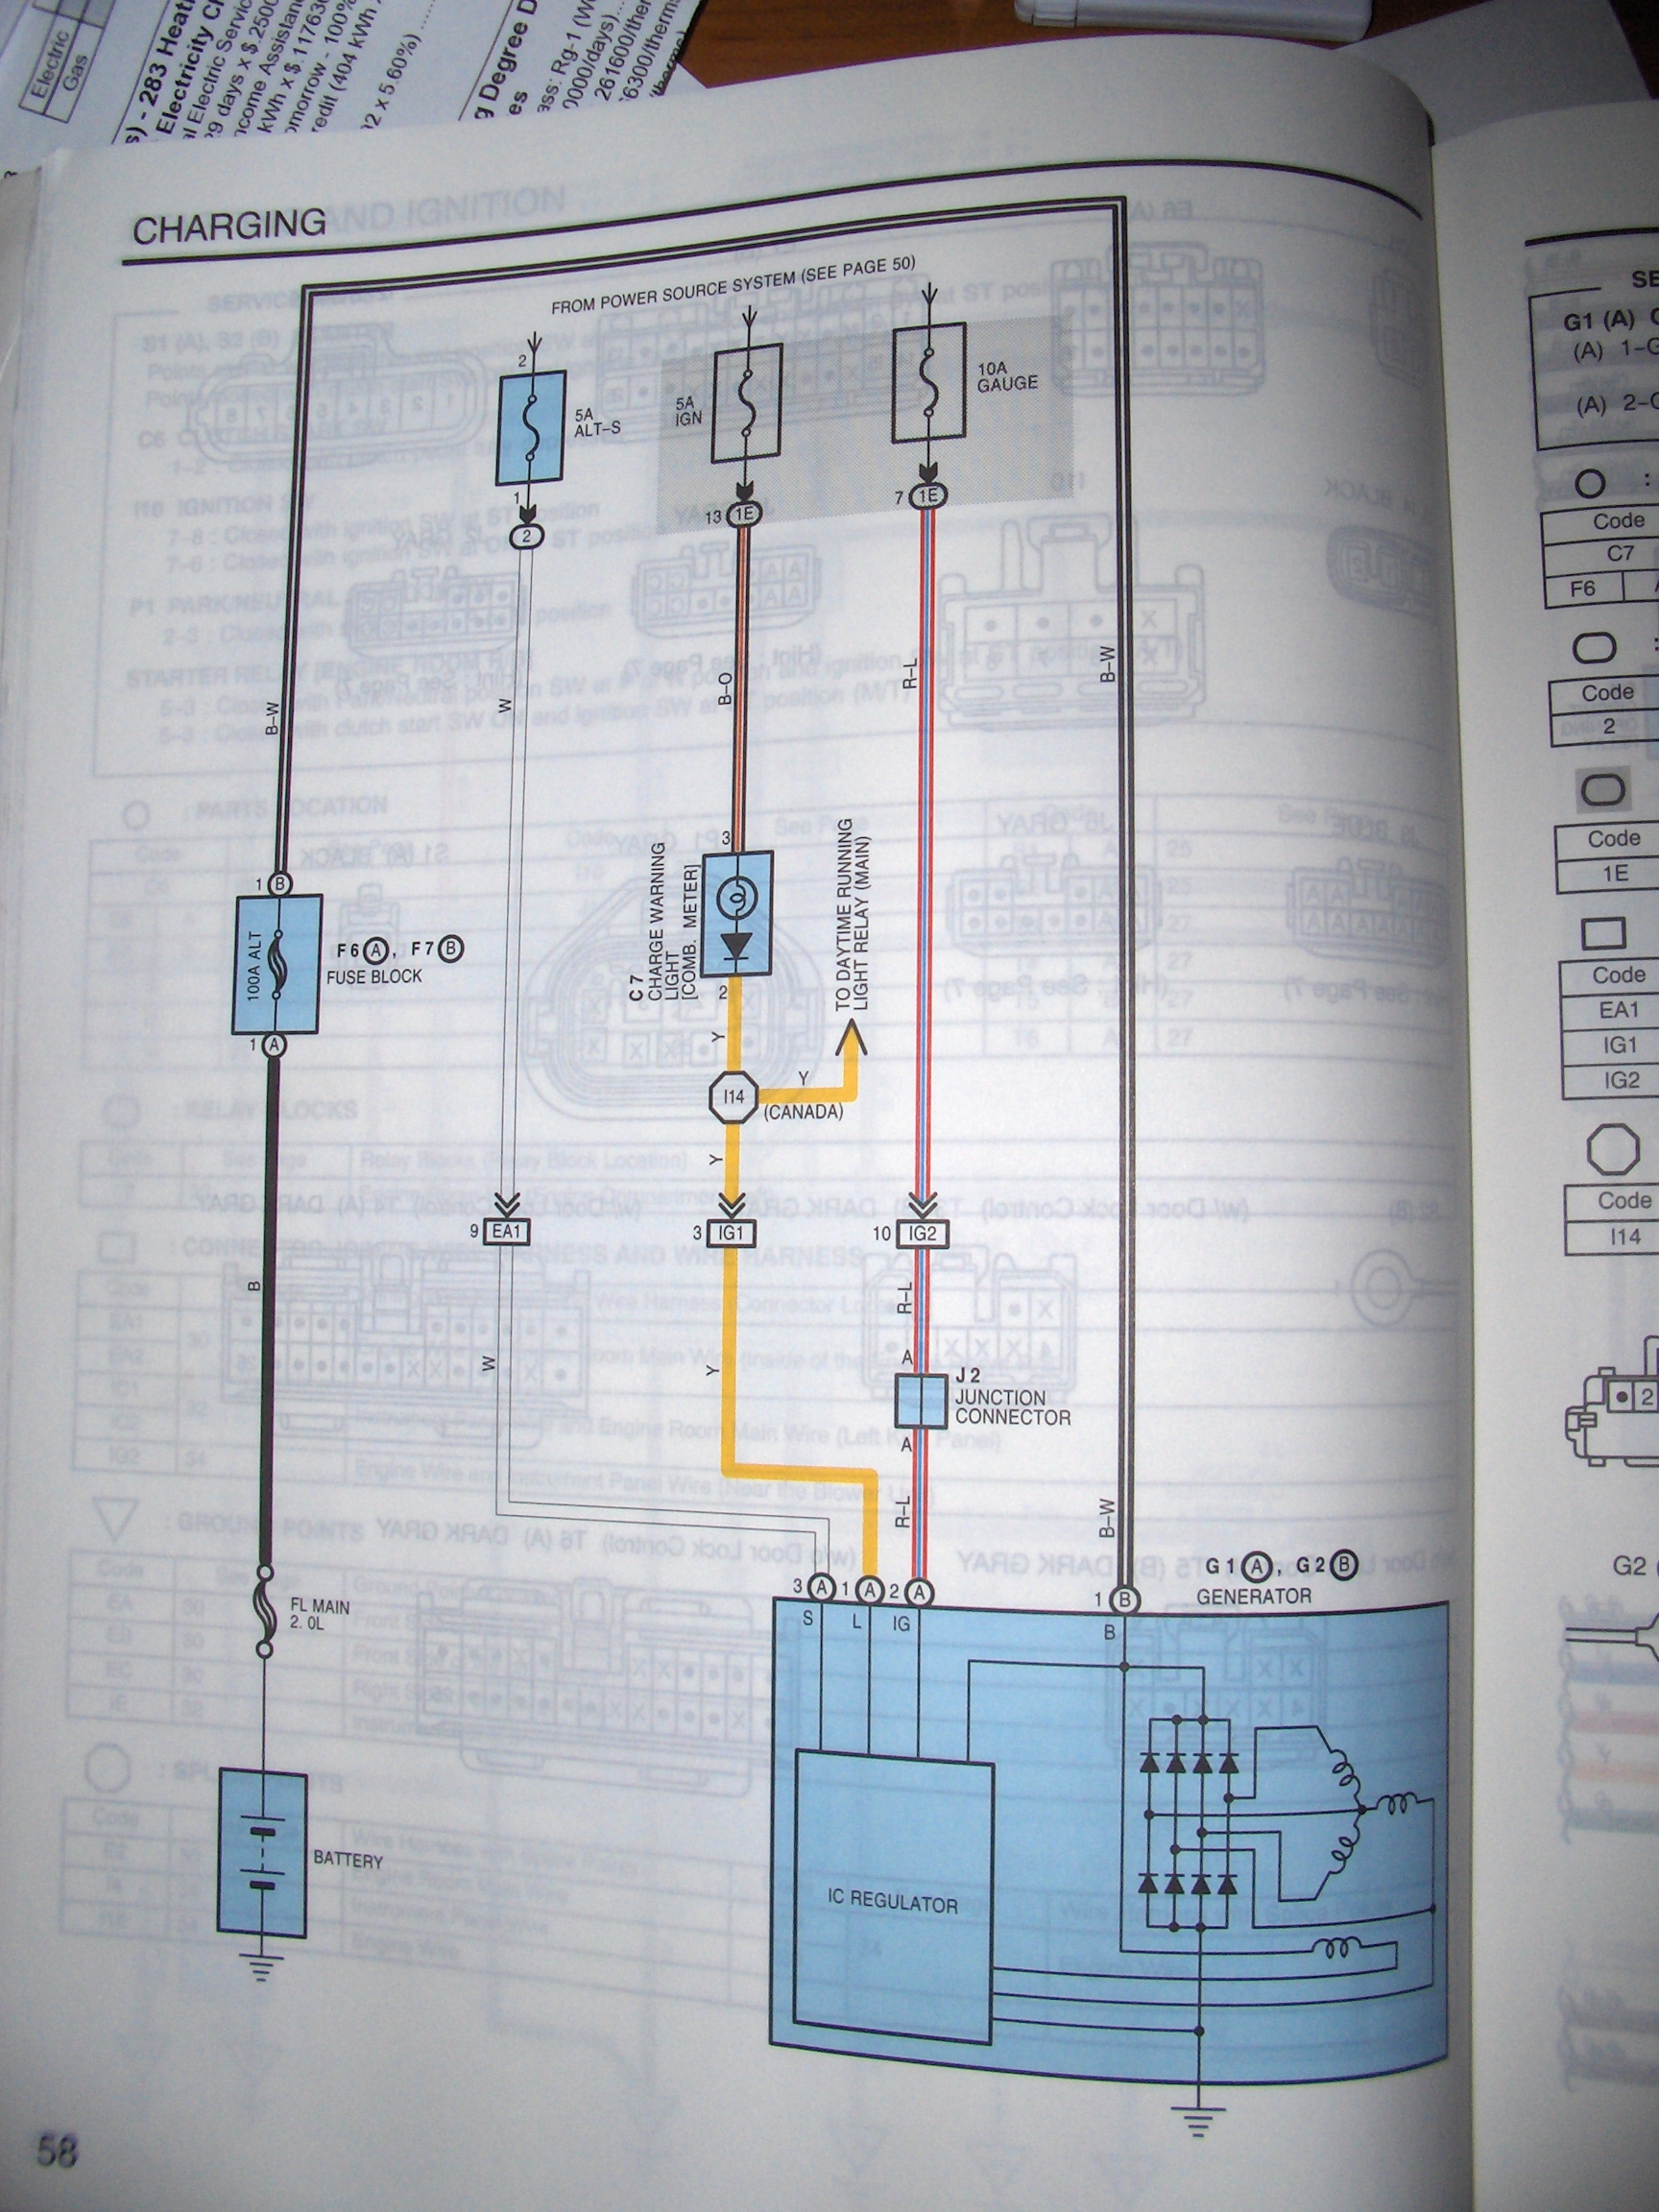 Jacobs Mileage Master Wiring Diagram Ultra Coil 32 Images Diagrams Paseo026 Diag At Cita